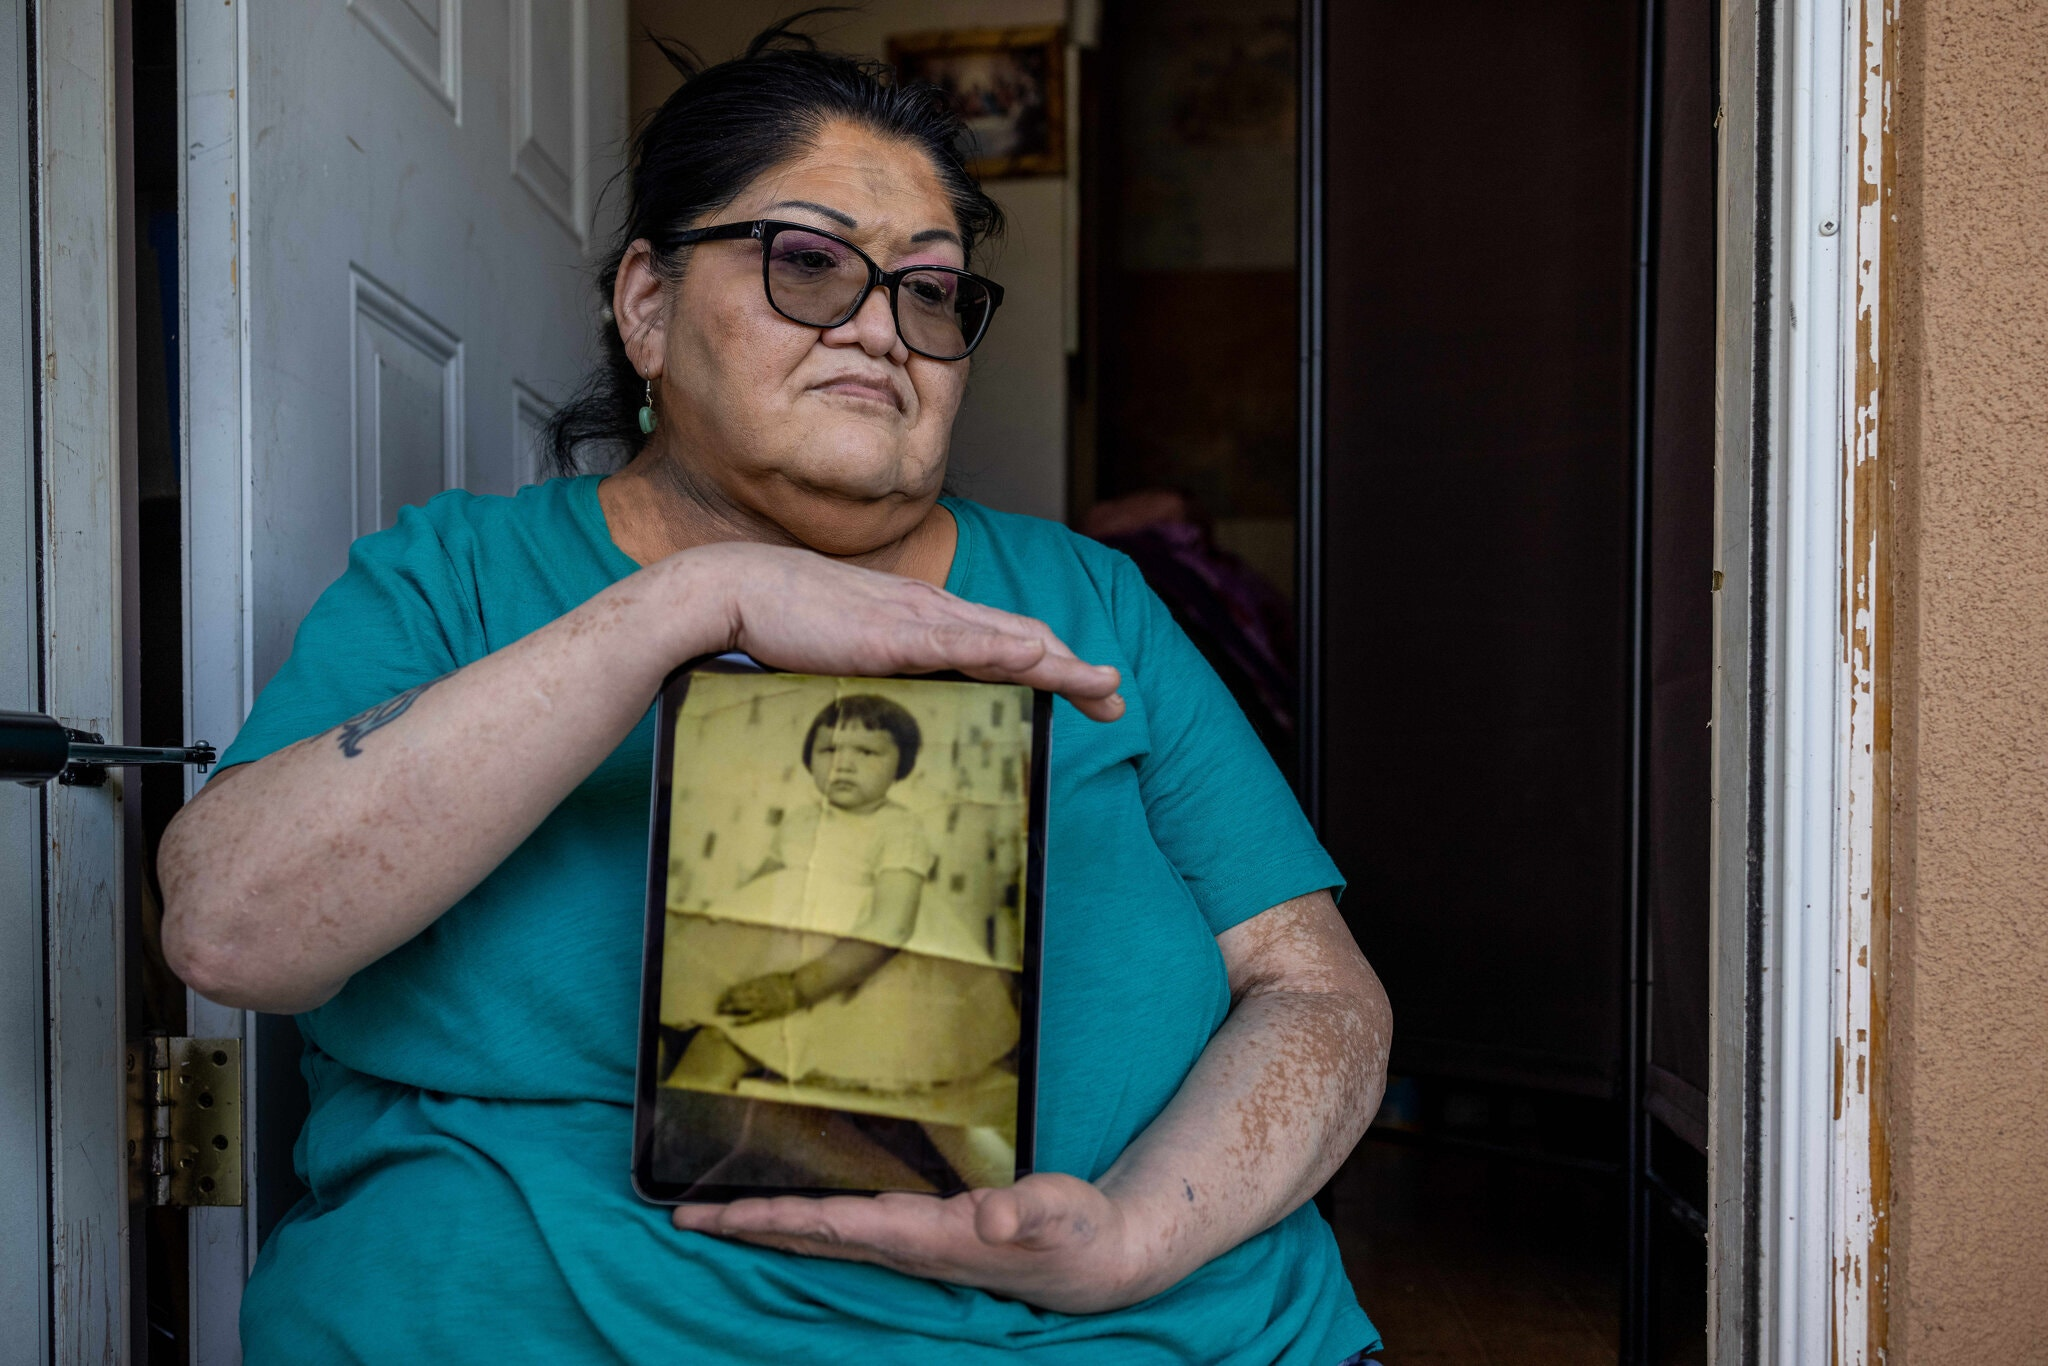 [Jacqueline Frost, 60, holds a photo showing how she was forced to adopt the look and attire of a white girl. She said she was beaten by a Ute aunt who served as a matron at a federal boarding school designed to assimilate Native children.Credit...Sharon Chischilly for The New York Times]